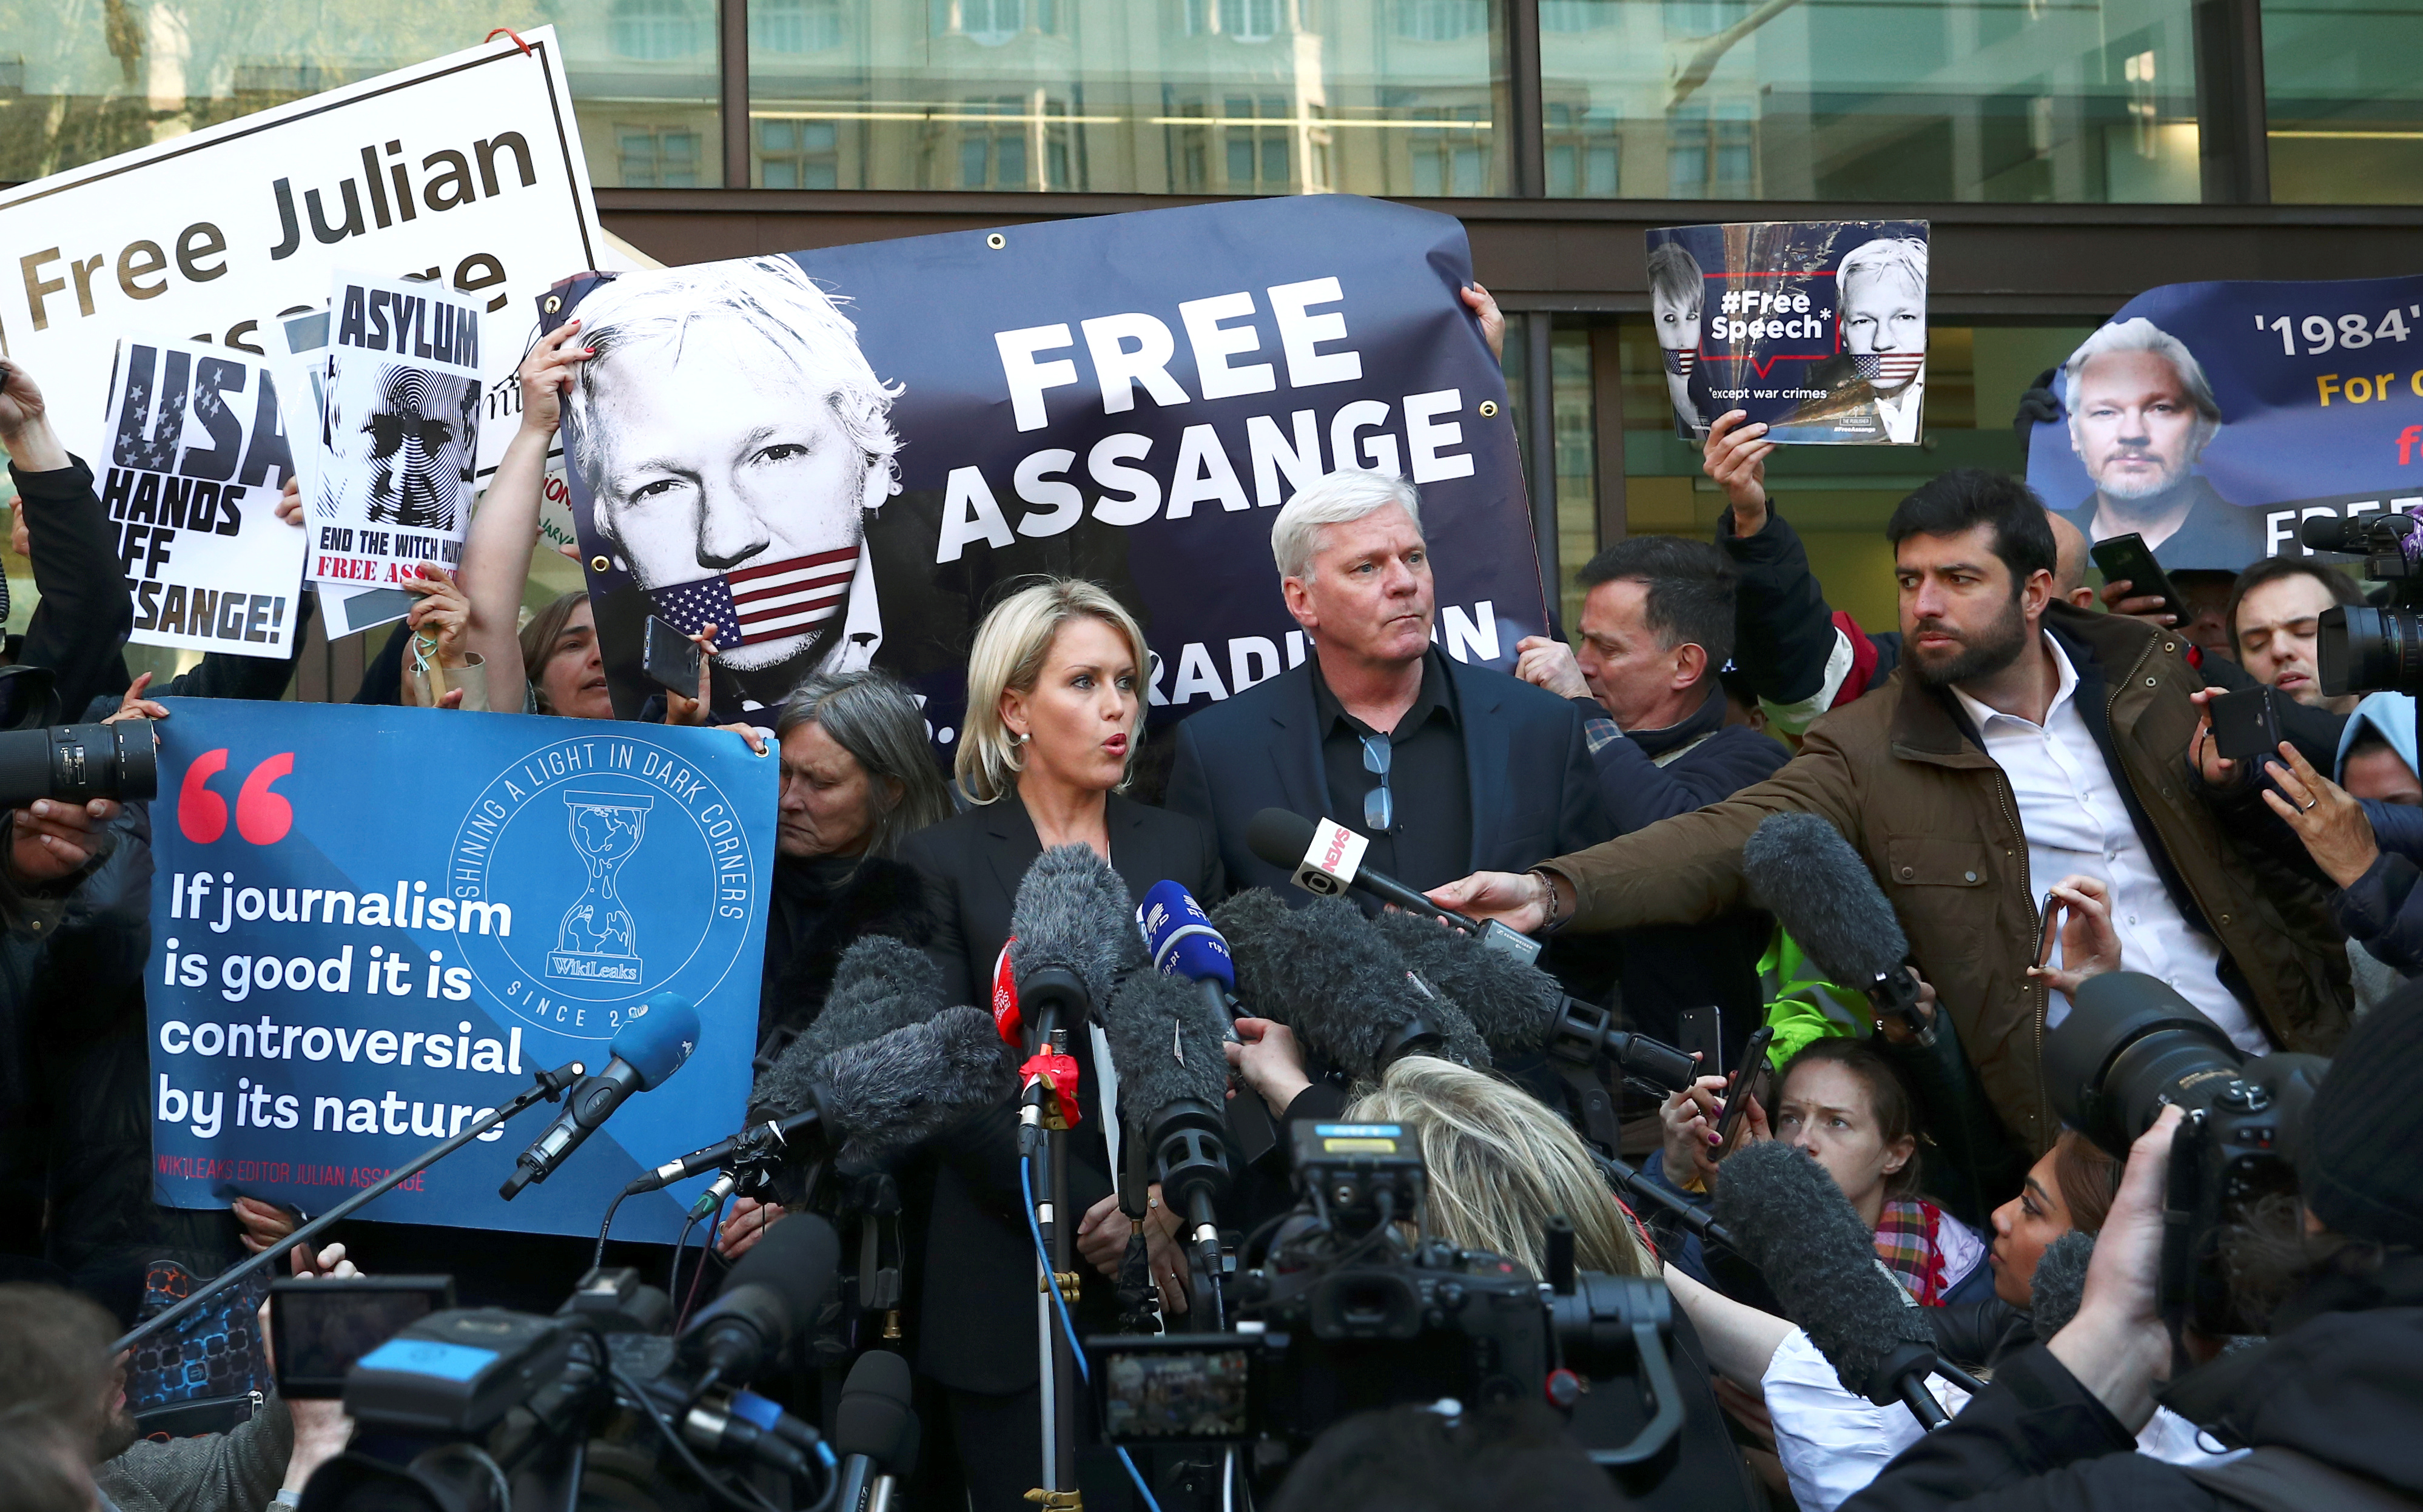 Kristinn Hrafnsson, editor in chief of Wikileaks, and barrister Jennifer Robinson talk to the media outside the Westminster Magistrates Court after WikiLeaks founder Julian Assange was arrested in London, Britain, April 11, 2019.